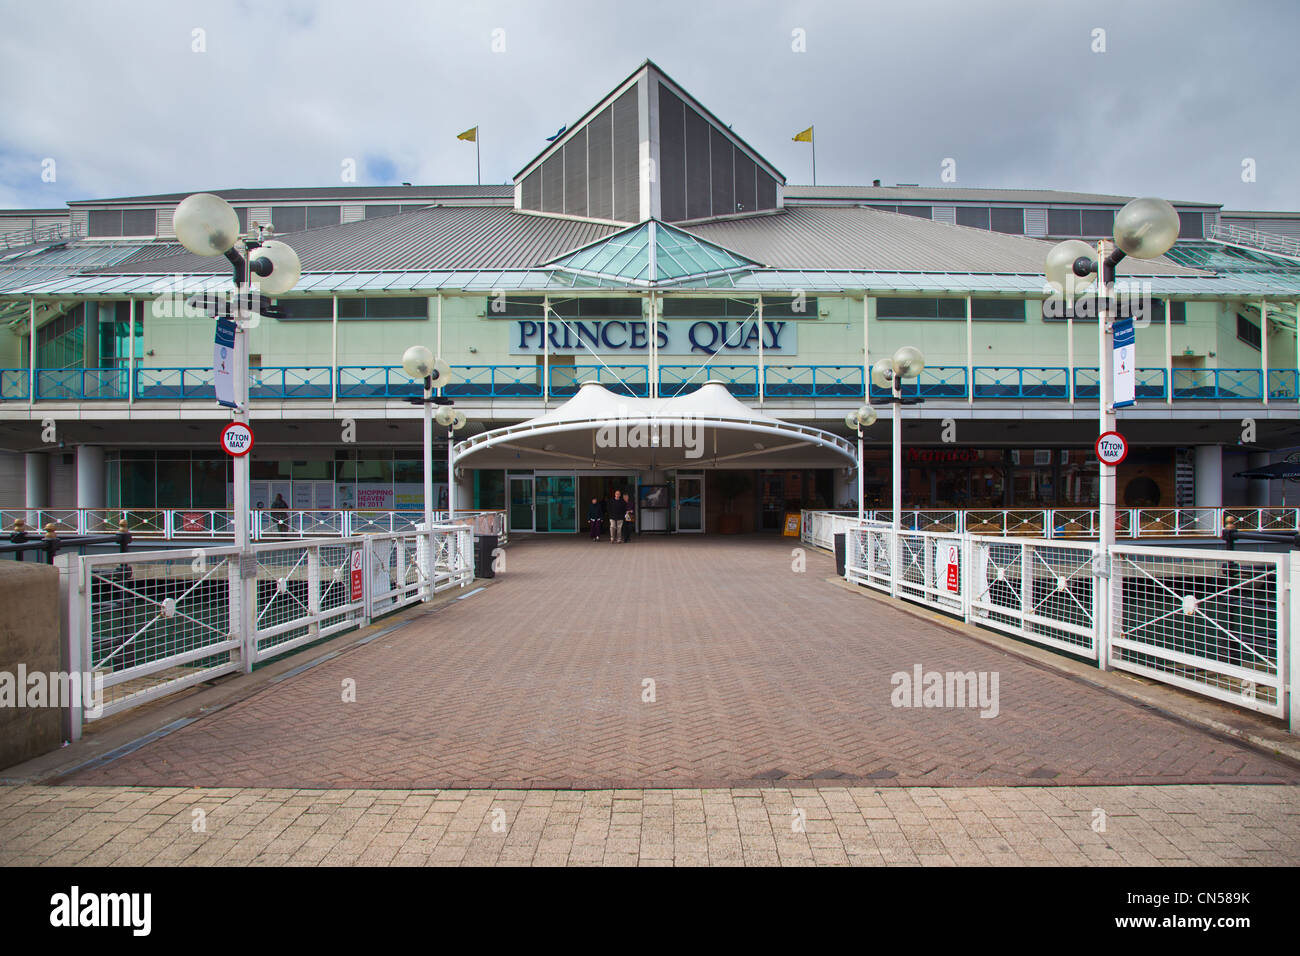 The Princes Quay Shopping Centre, Hull, East Yorkshire, UK - Stock Image